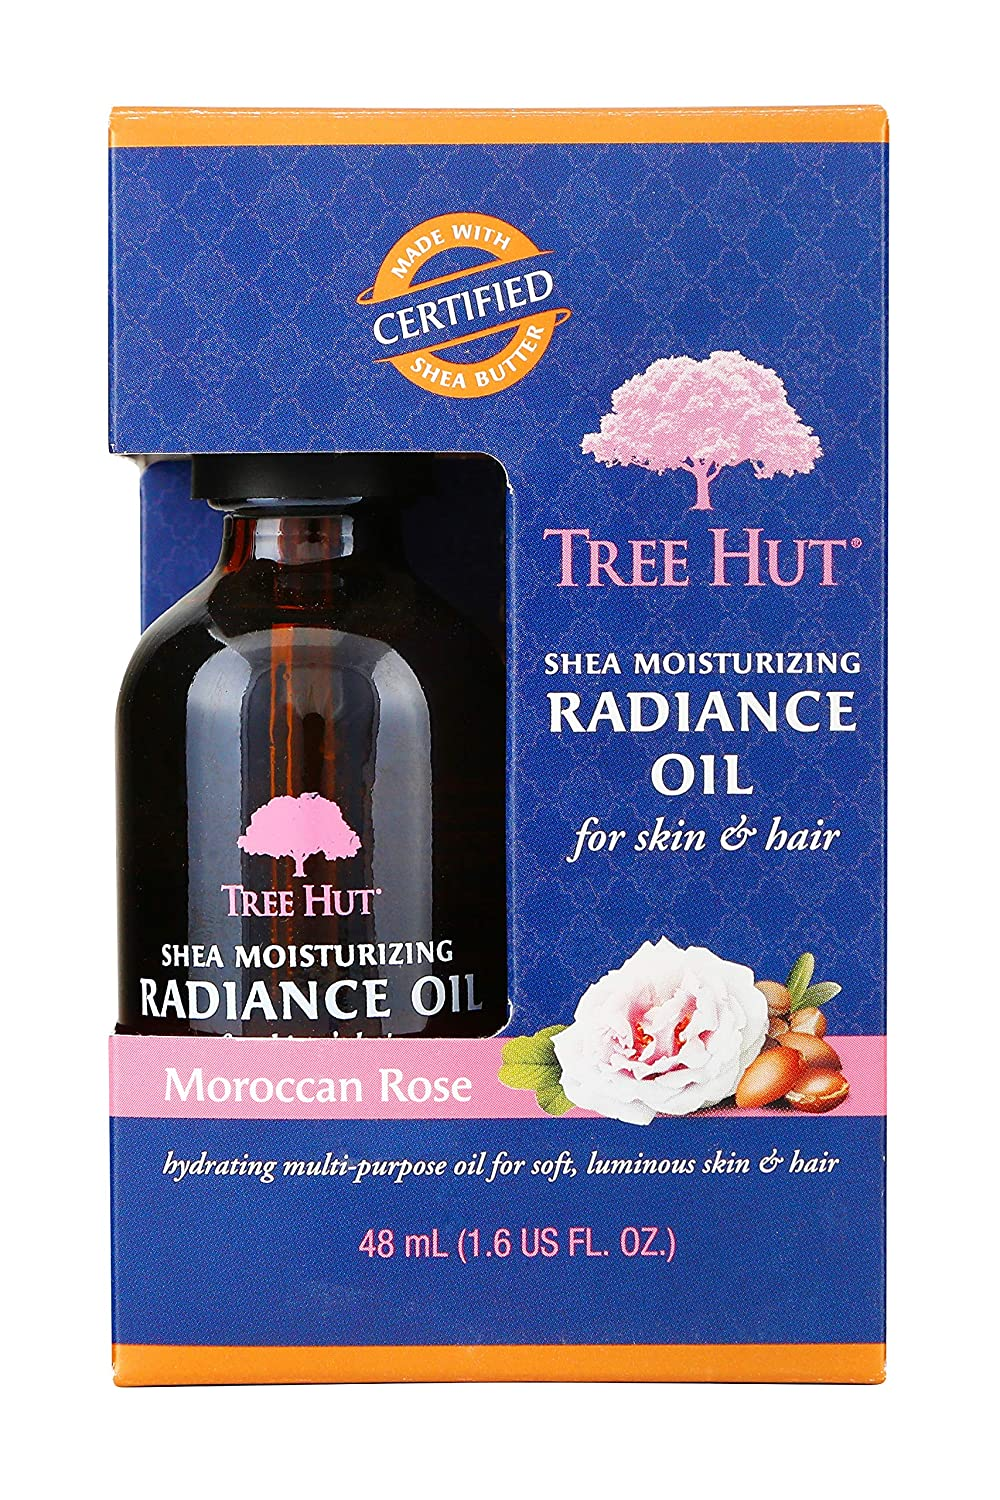 Tree Hut Shea Moisturizing Radiance Oil Moroccan Rose, 1.6oz, Ultra Hydrating Oil for Nourishing Essential Body Care